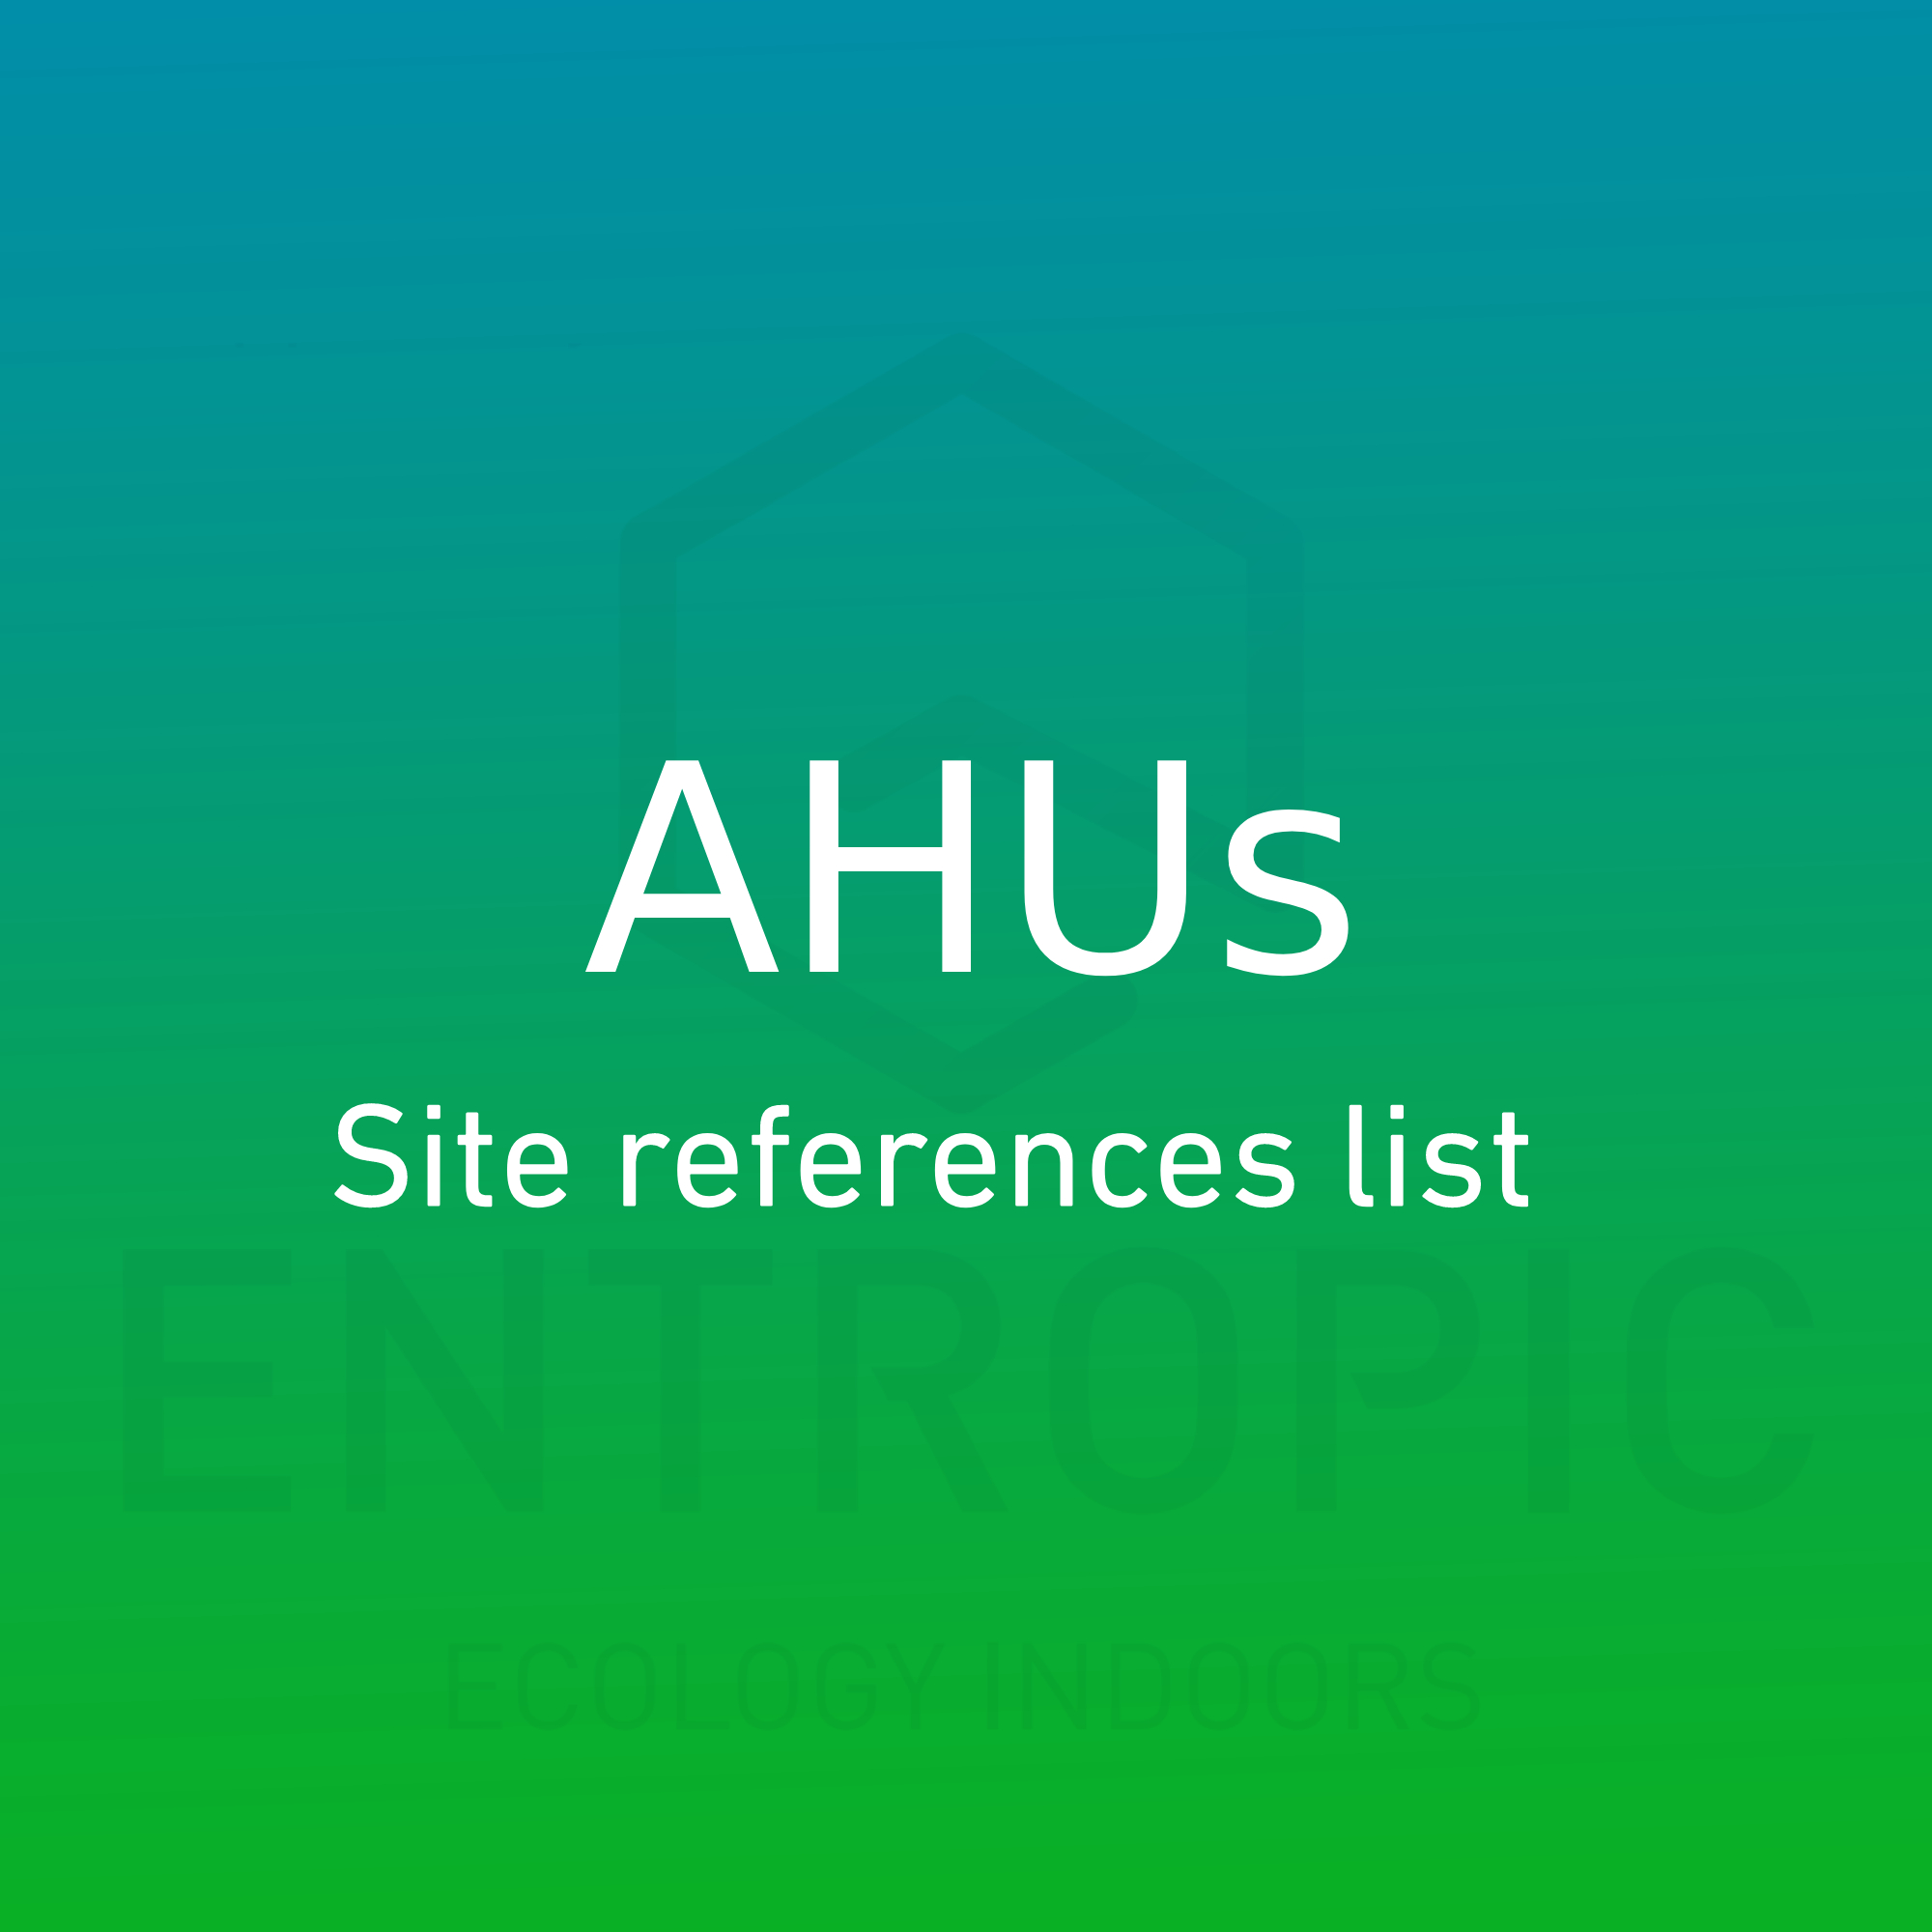 ahus-site-reference-list